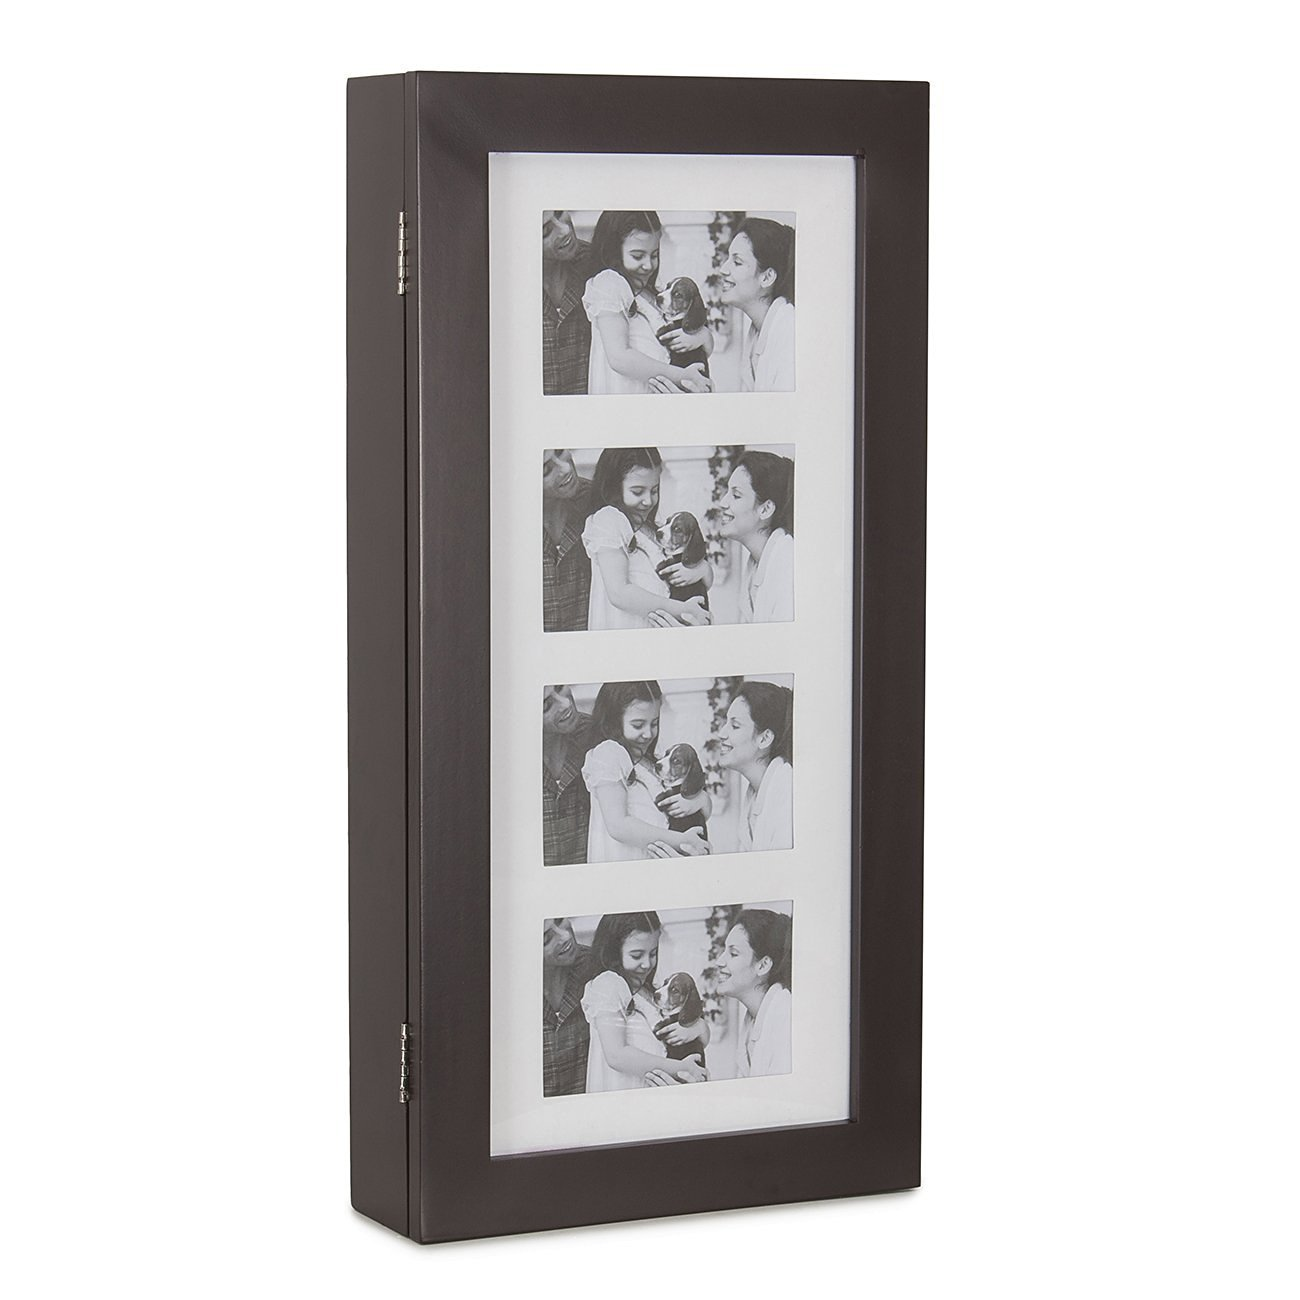 Cheap Photo Jewelry Box Wall Mount Find Photo Jewelry Box Wall